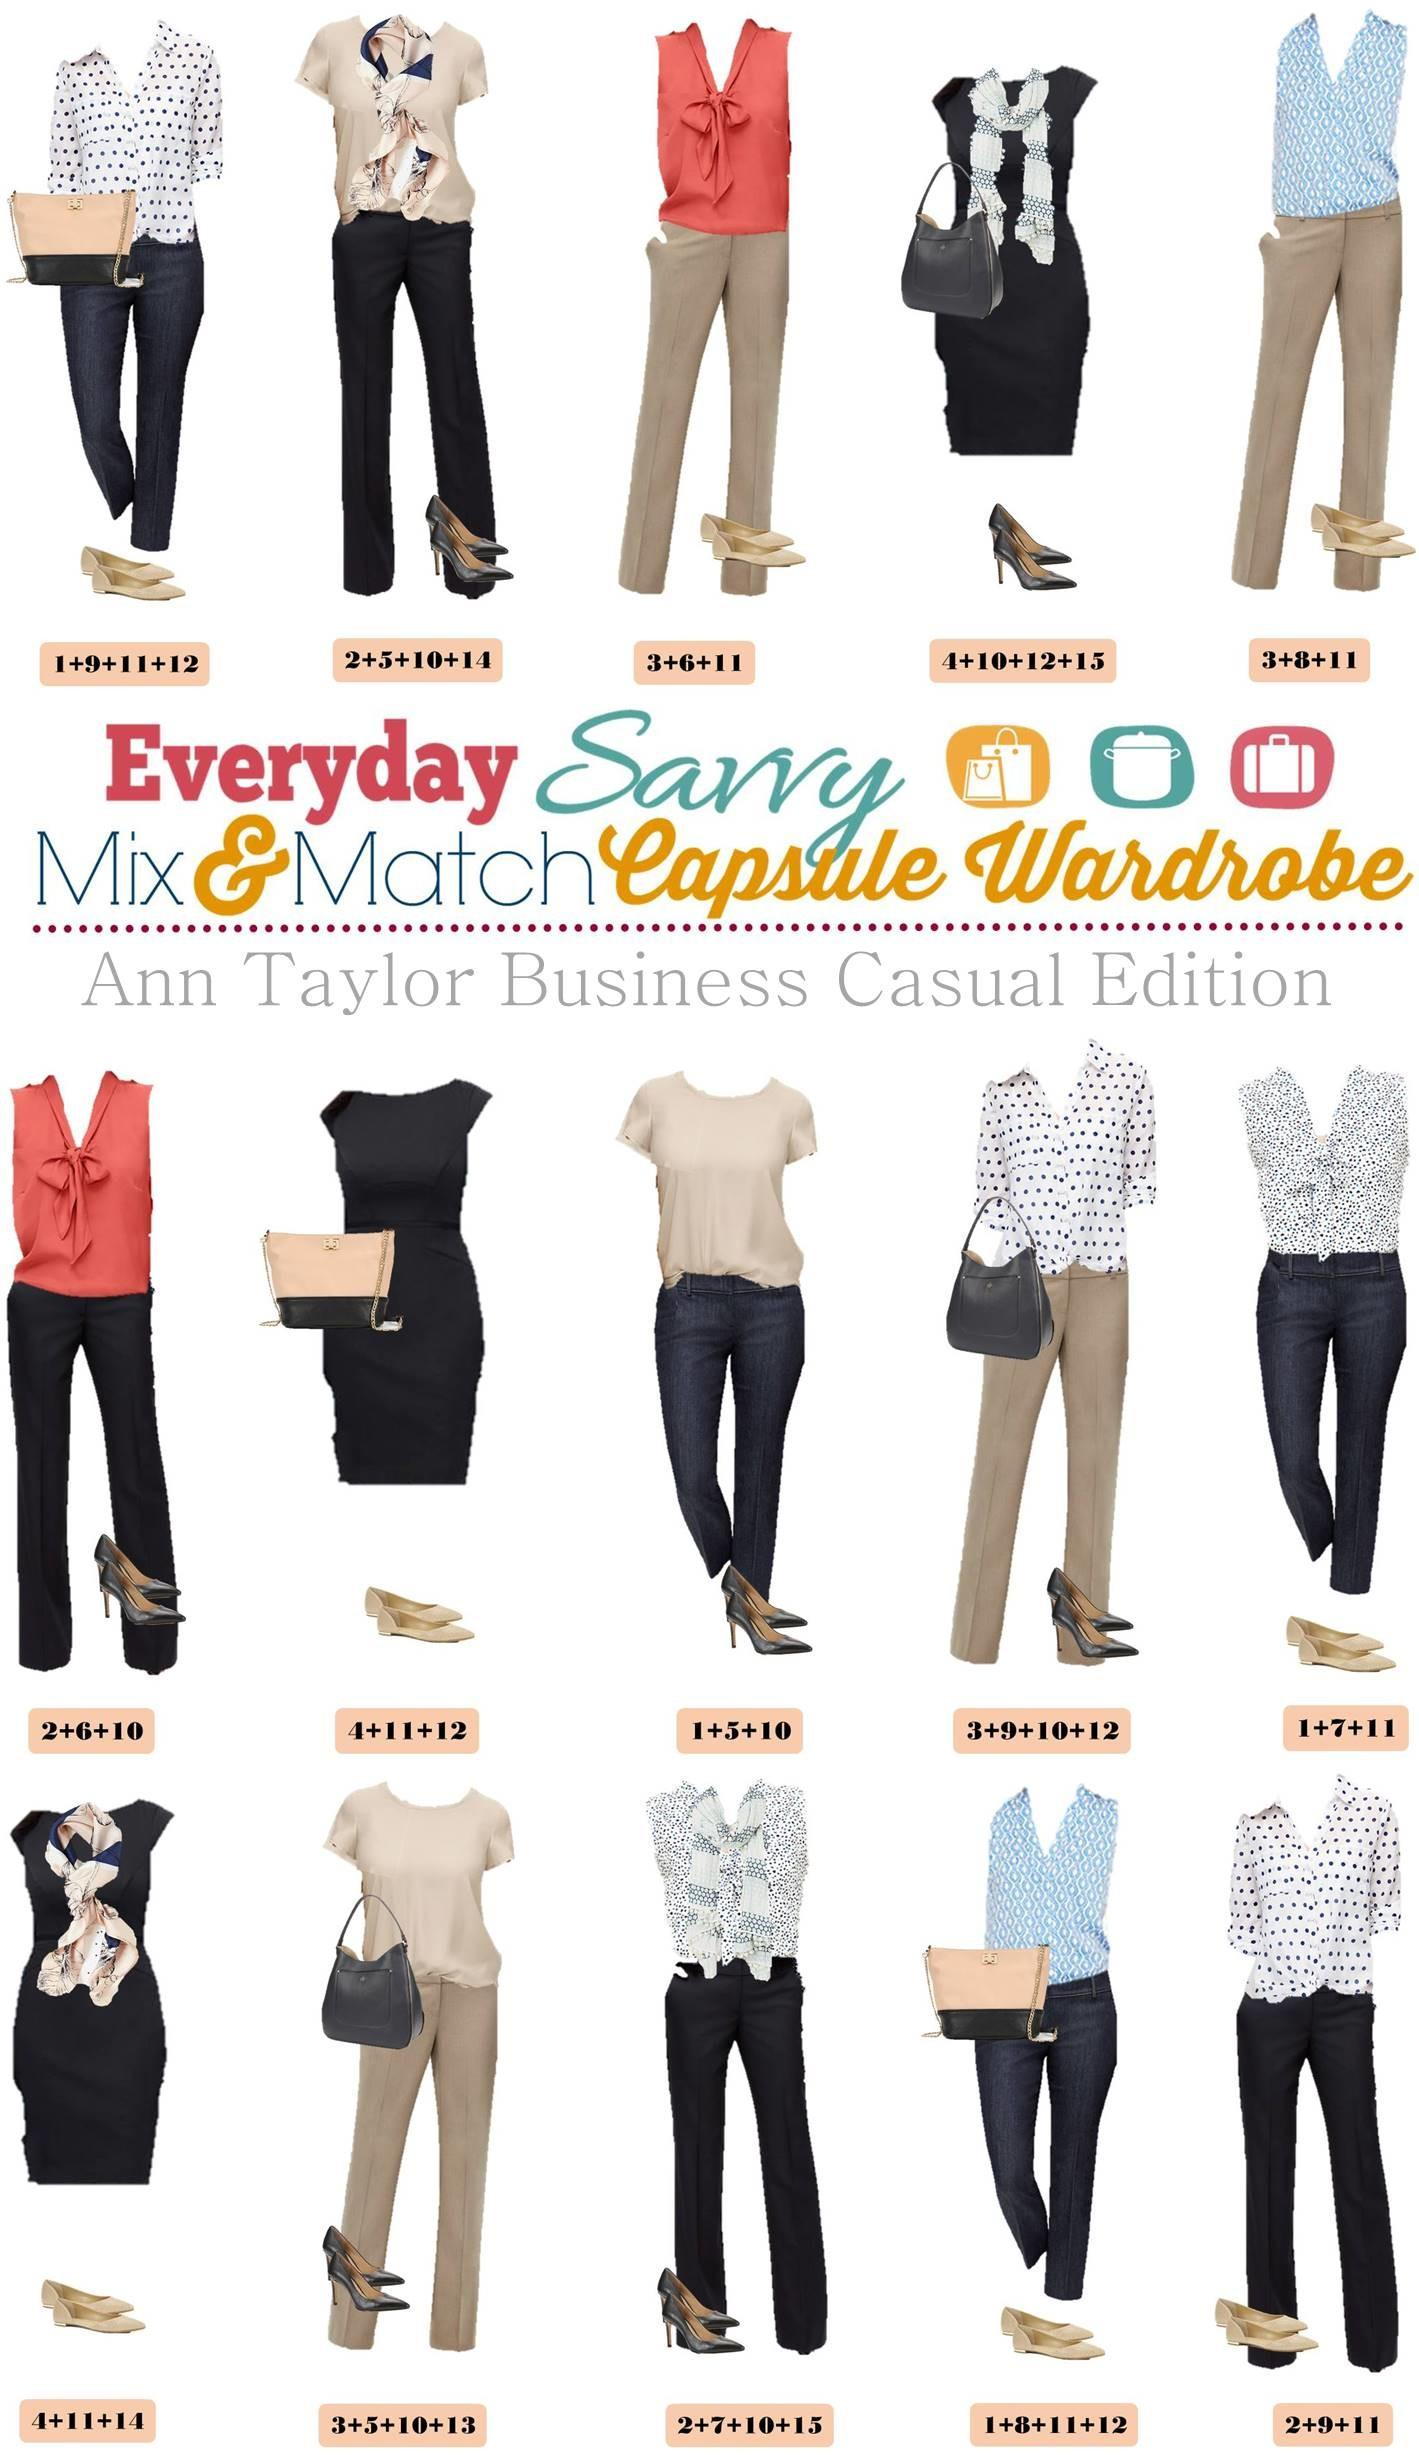 Ann Taylor Business Casual Capsule Wardrobe Mix Match